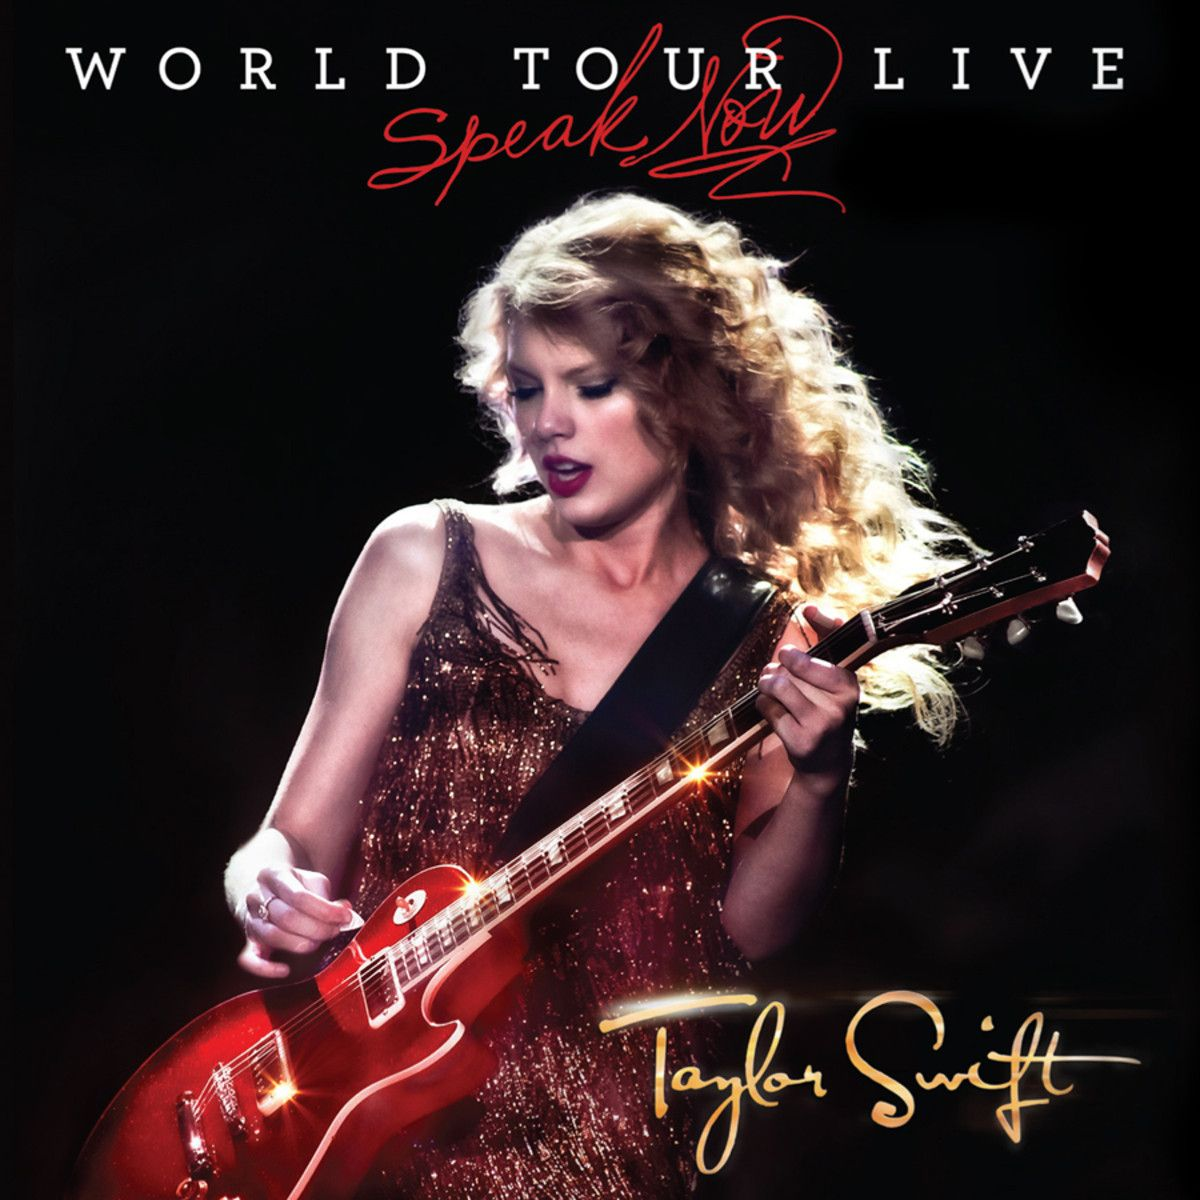 Taylor Swift - Speak Now: World Tour Live Cd + Dvd album cover